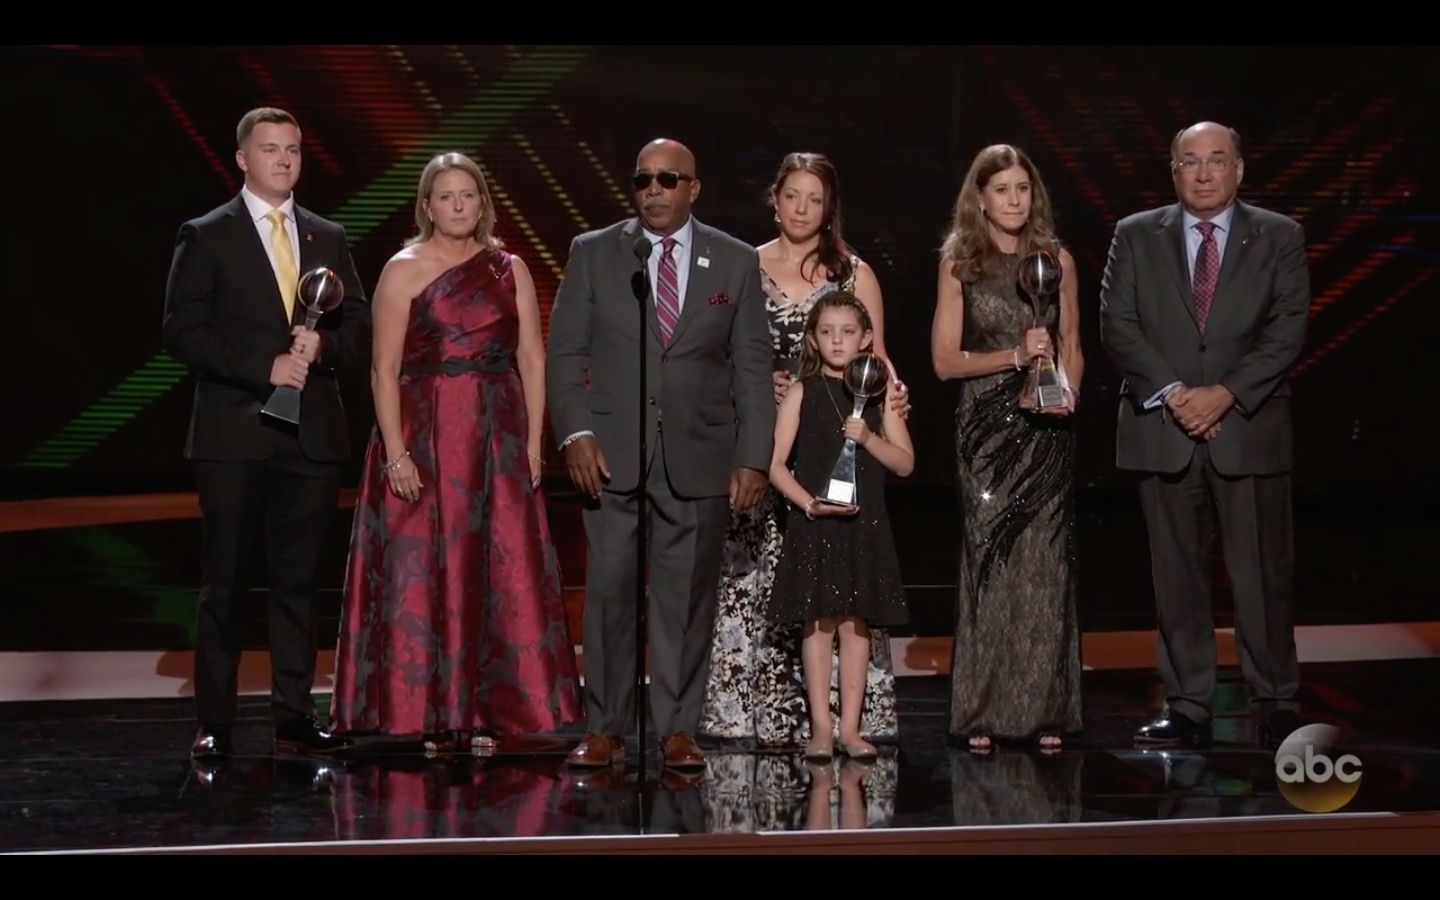 The families of Scott Beigel, Aaron Feis and Chris Hixon jointly accepted the award for Best Coach at the ESPYs.